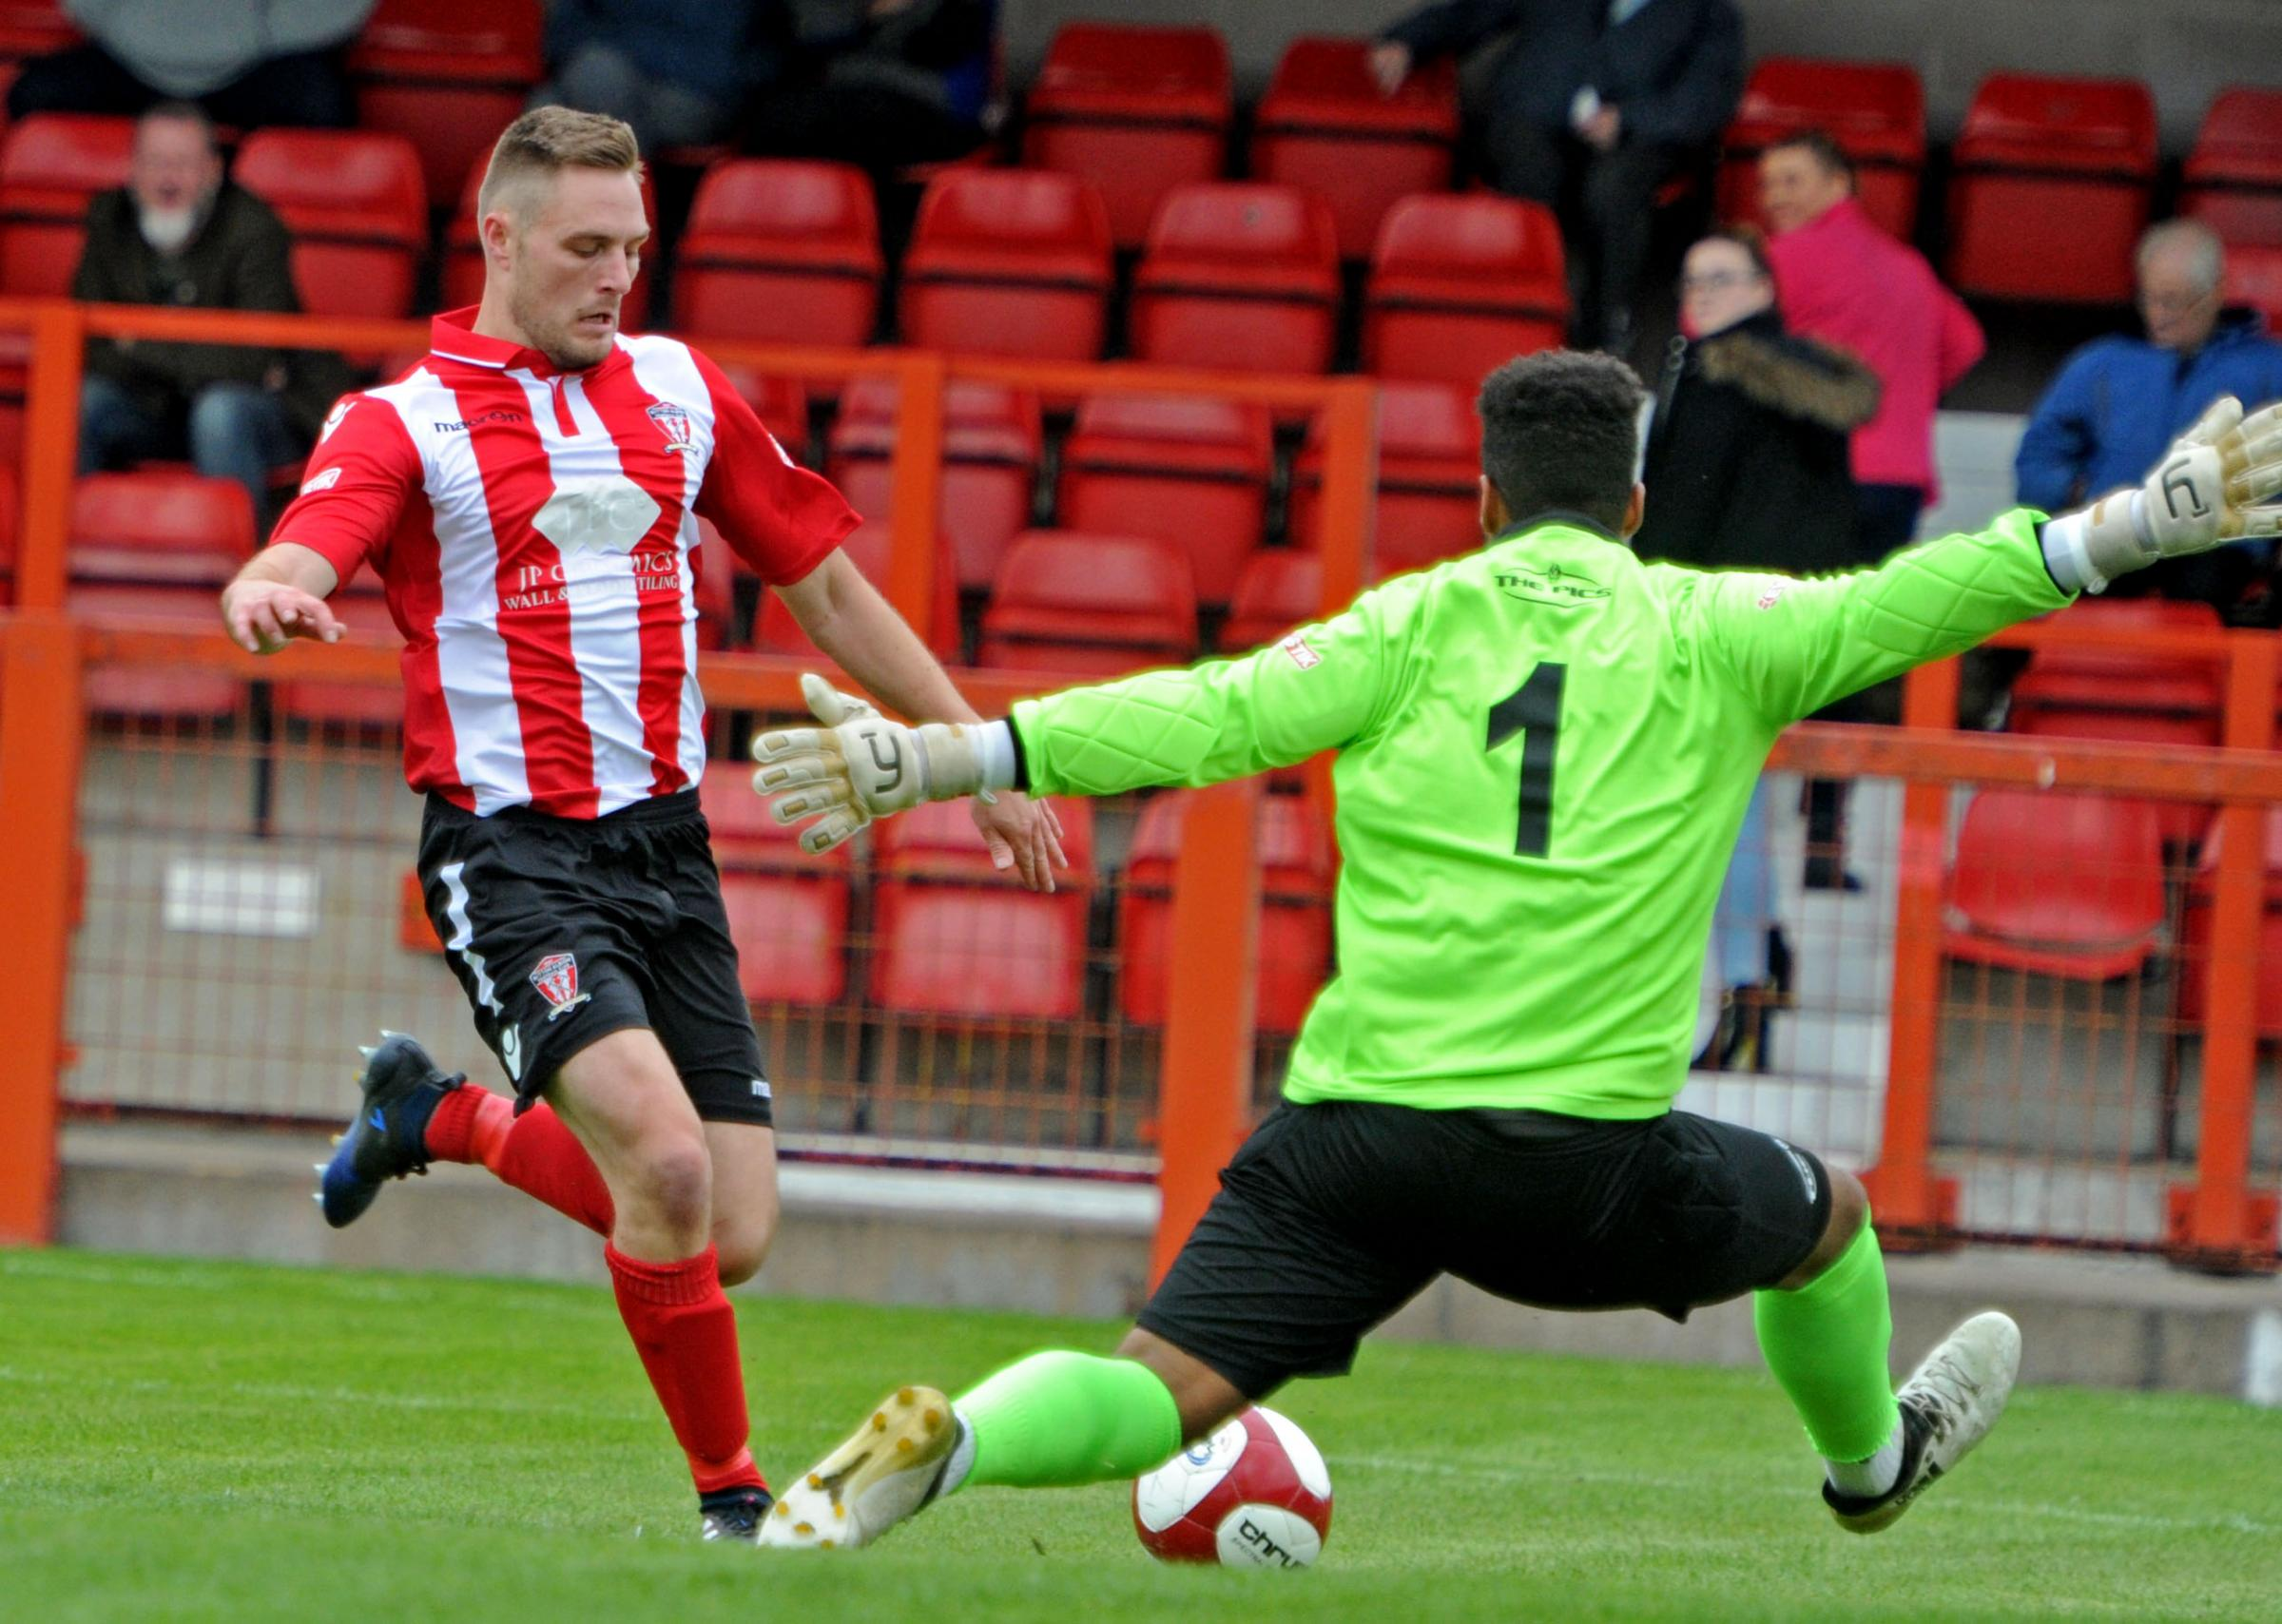 Steven Tames, the scorer of Witton's penalty, is one on one with Rushall keeper Jonathan Brown. Picture by Paul Heaps